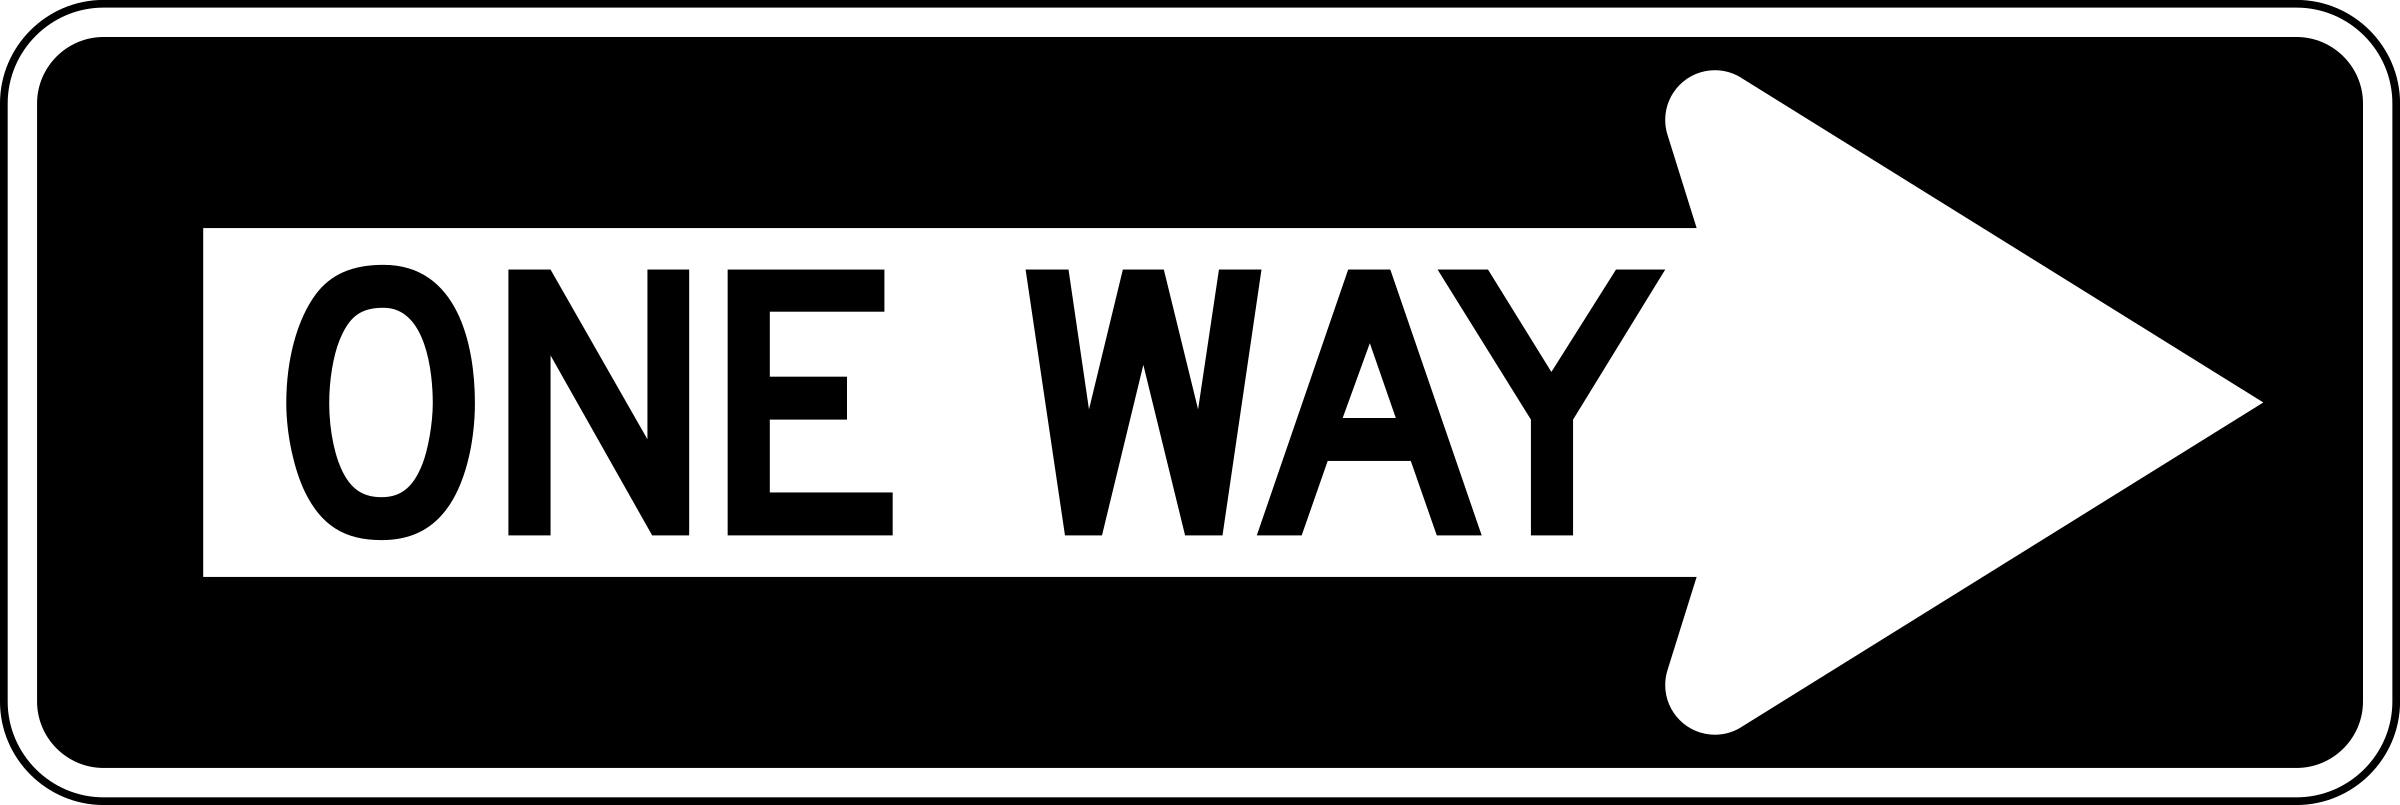 One Way Right traffic sign, horizontal by Rfc1394